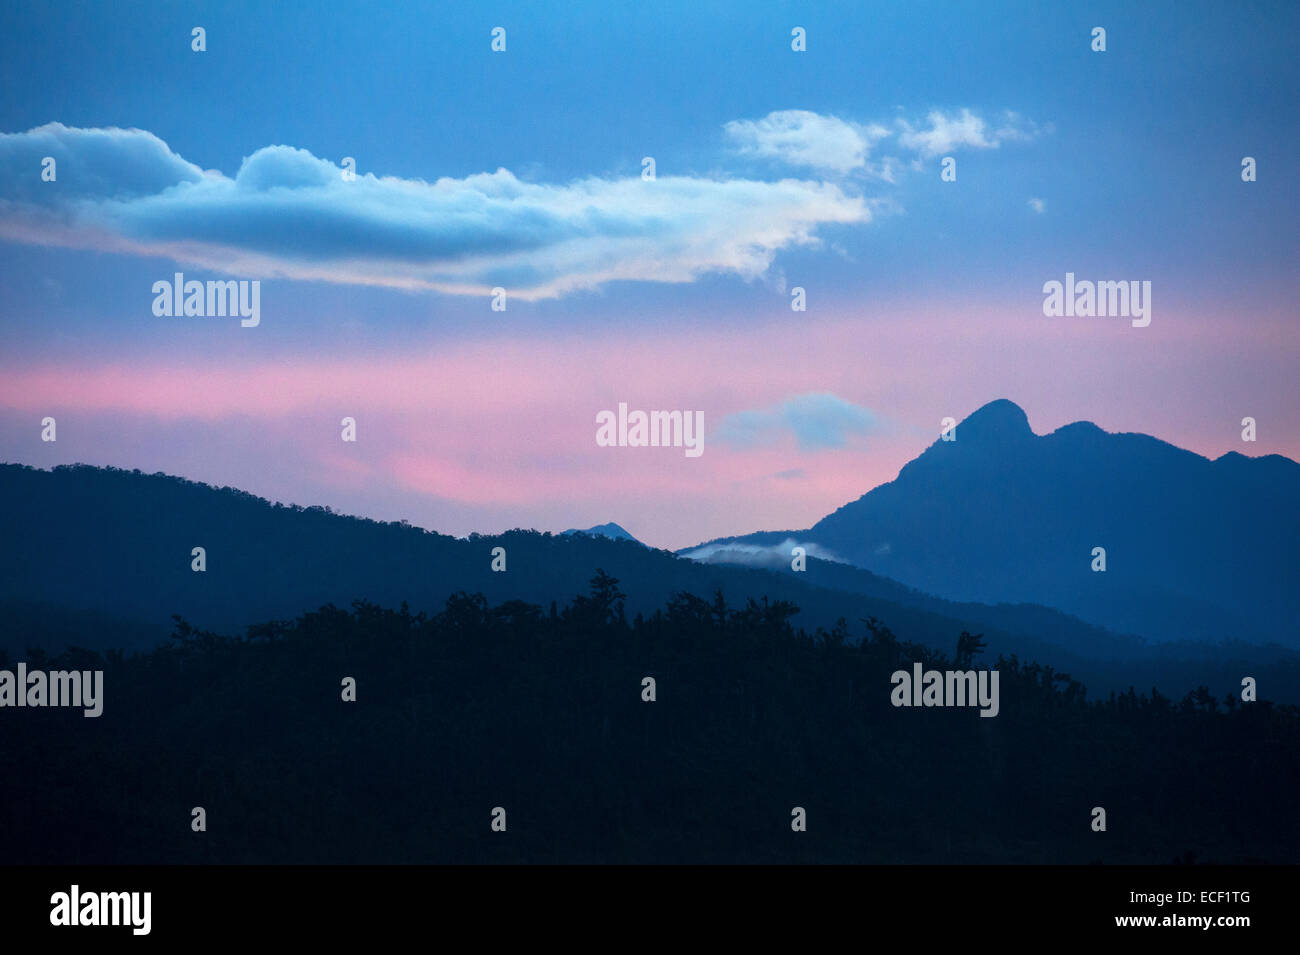 Sunset over the Sierra Madre mountains in Luzon, Philippines - Stock Image